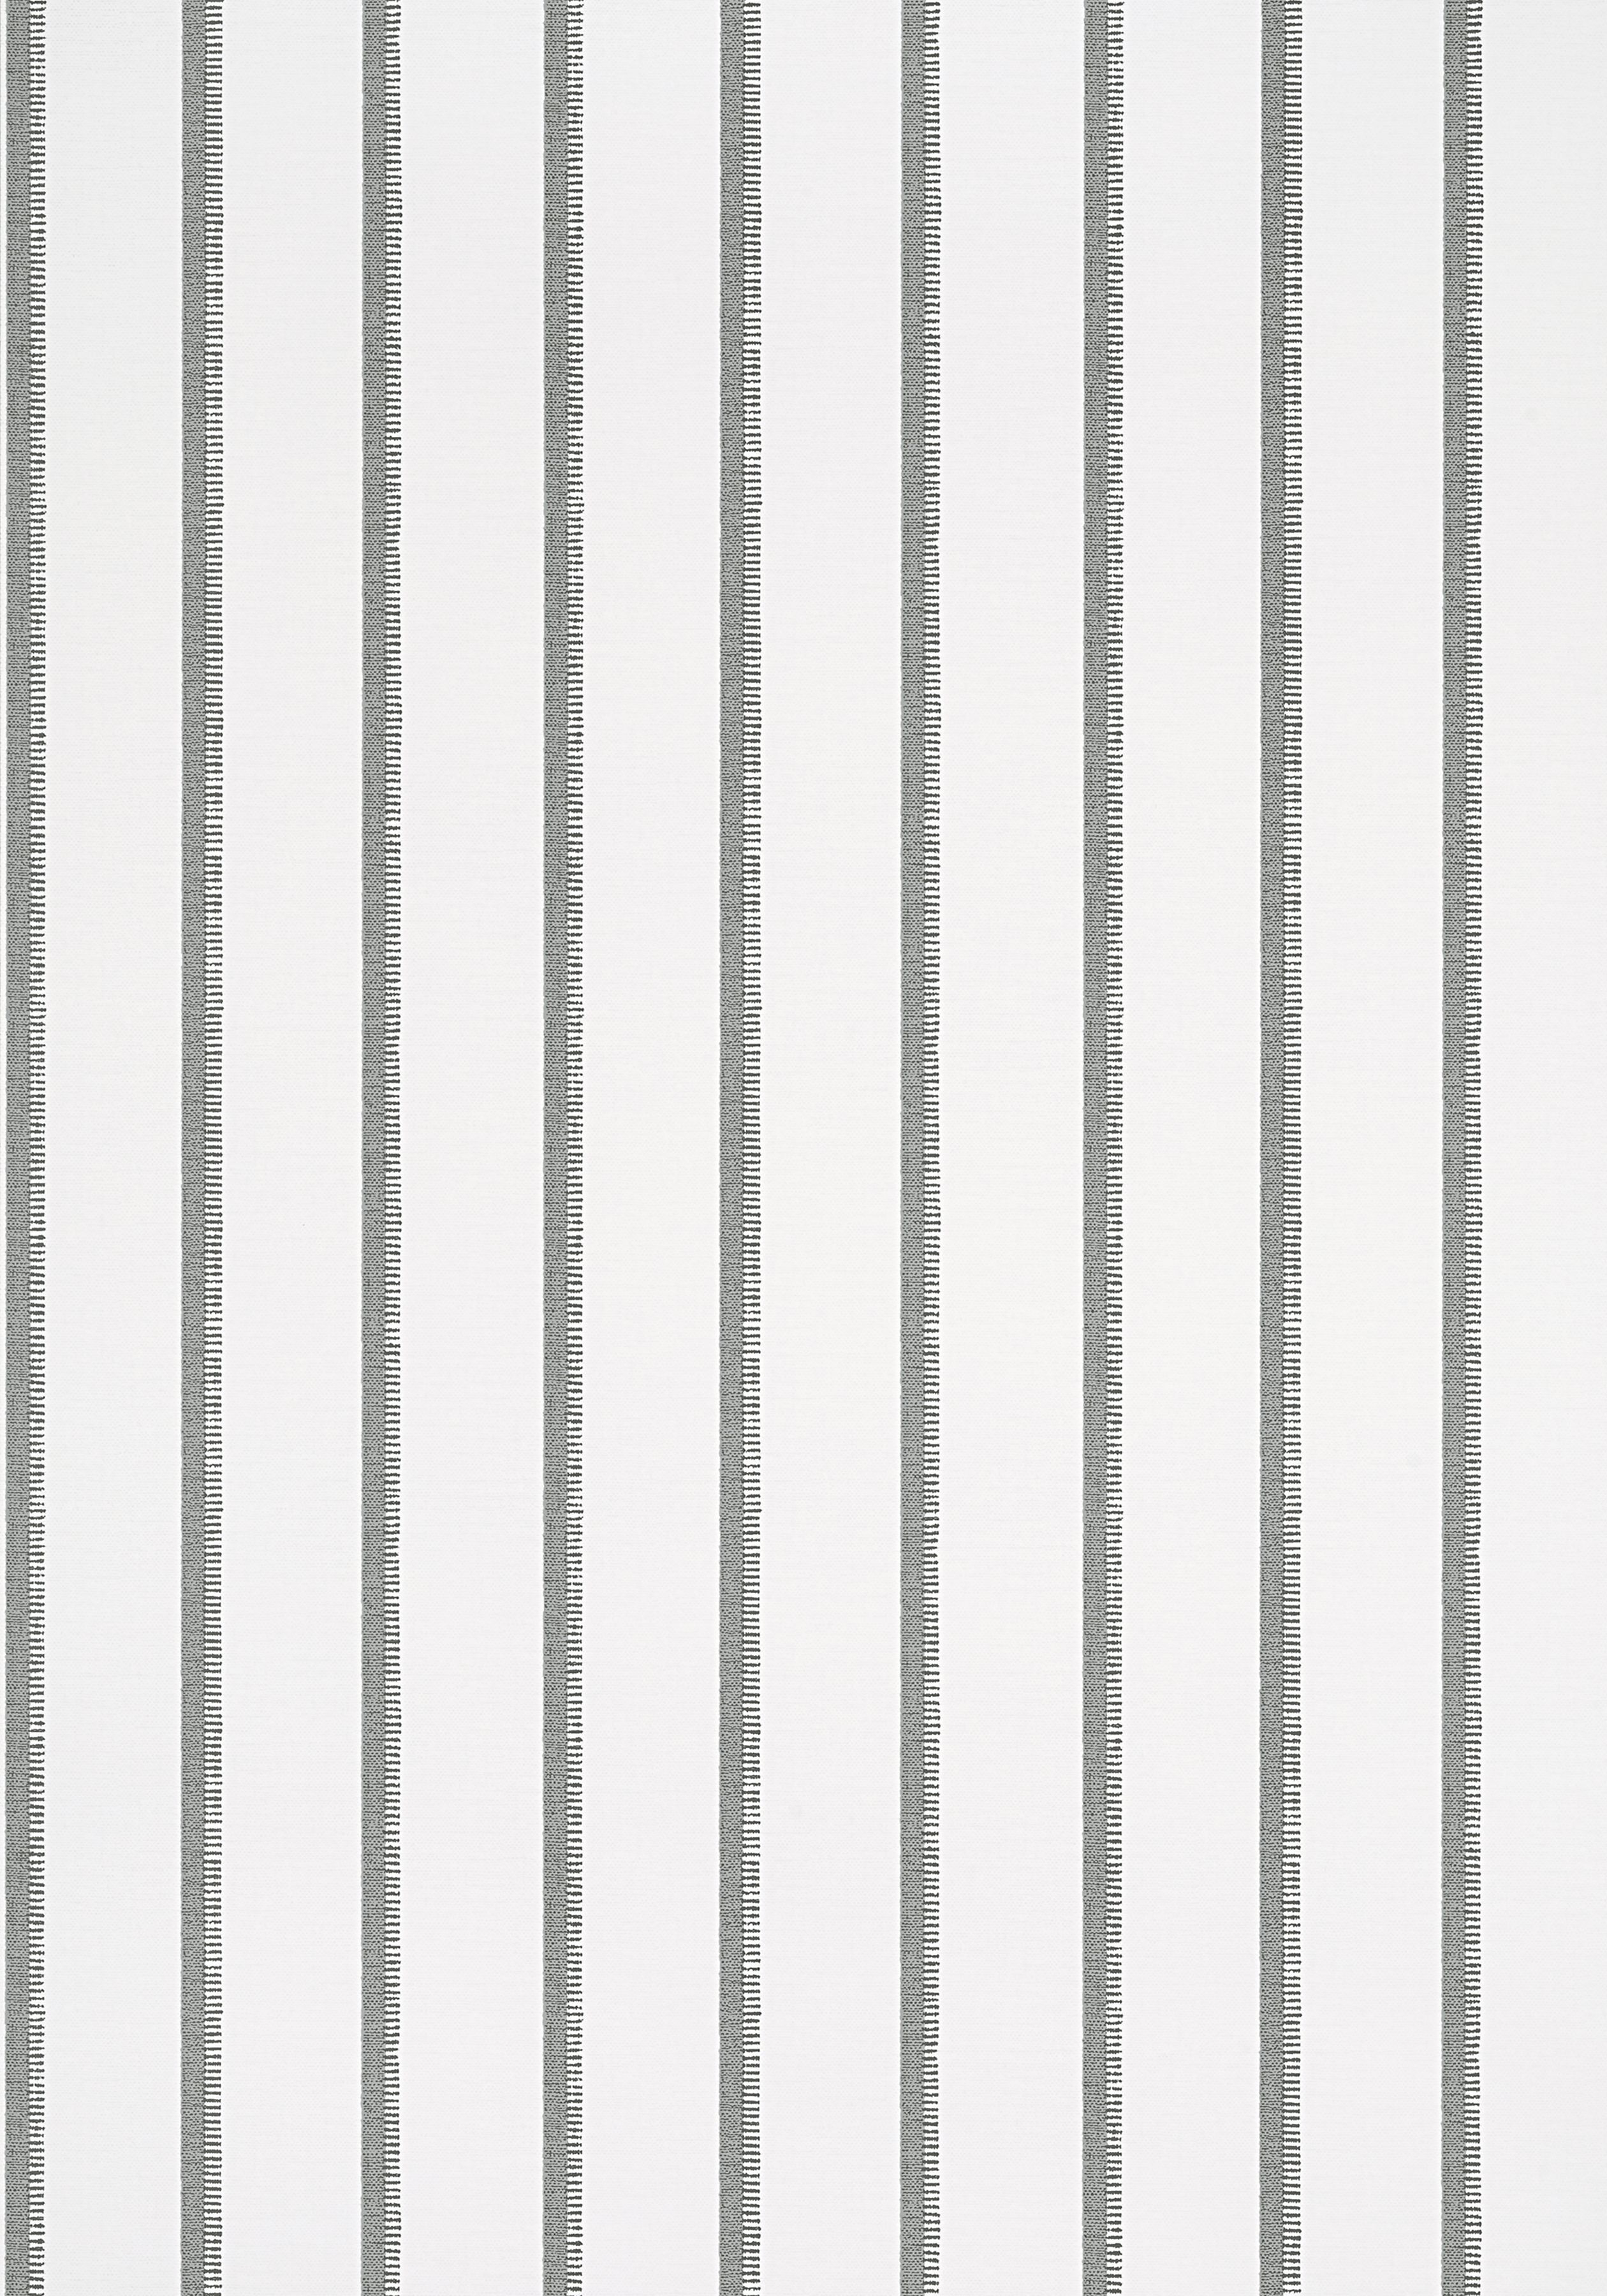 Notch Stripe Grey T10263 Collection Colony From Thibaut Striped Wallpaper Construction Wallpaper Print Patterns